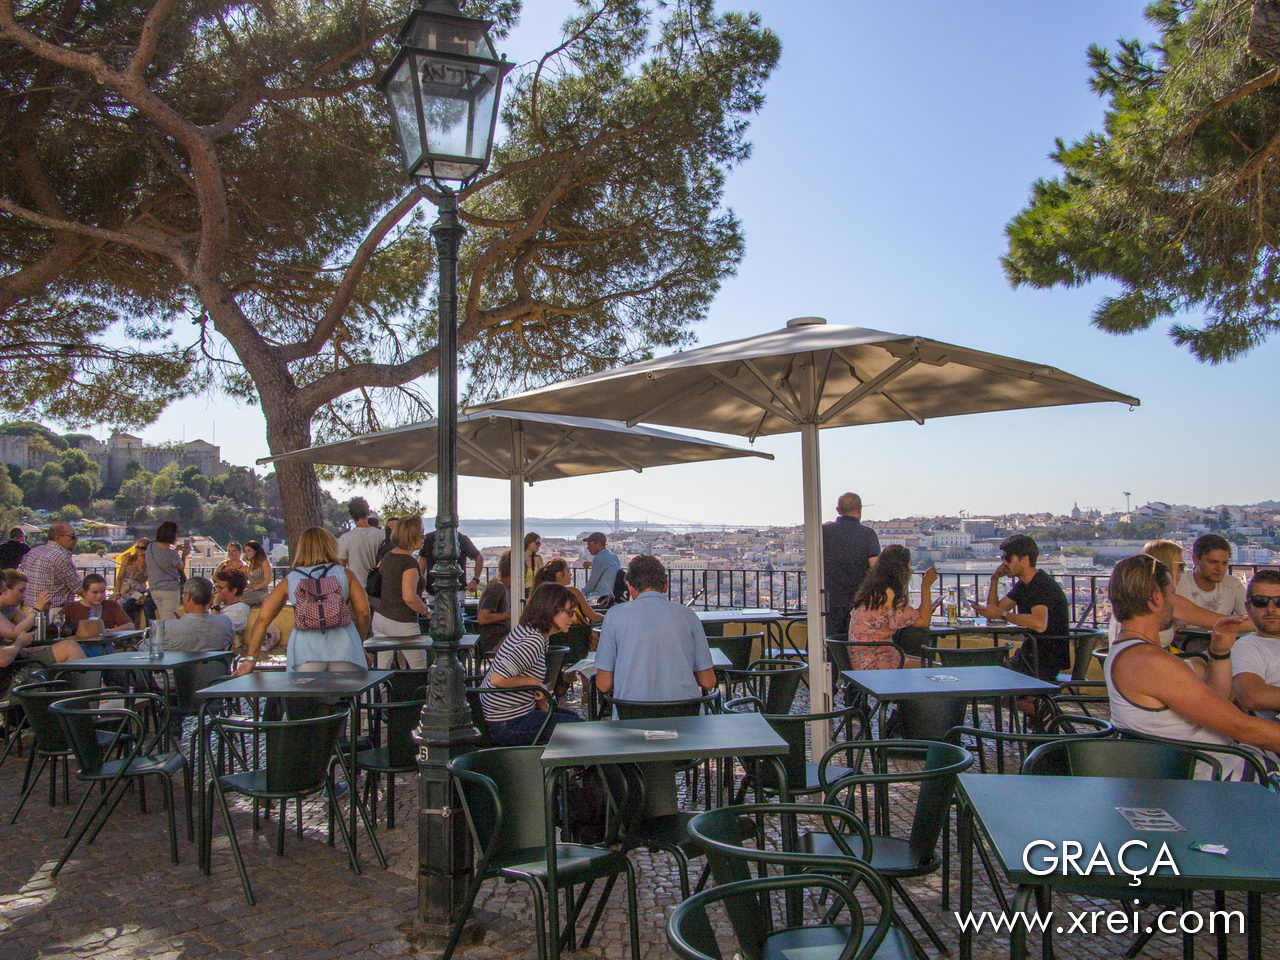 Esplanade of the Graça viewpoint bar, overlooking the city and opportunity to enjoy the panoramic view over the city of Lisbon